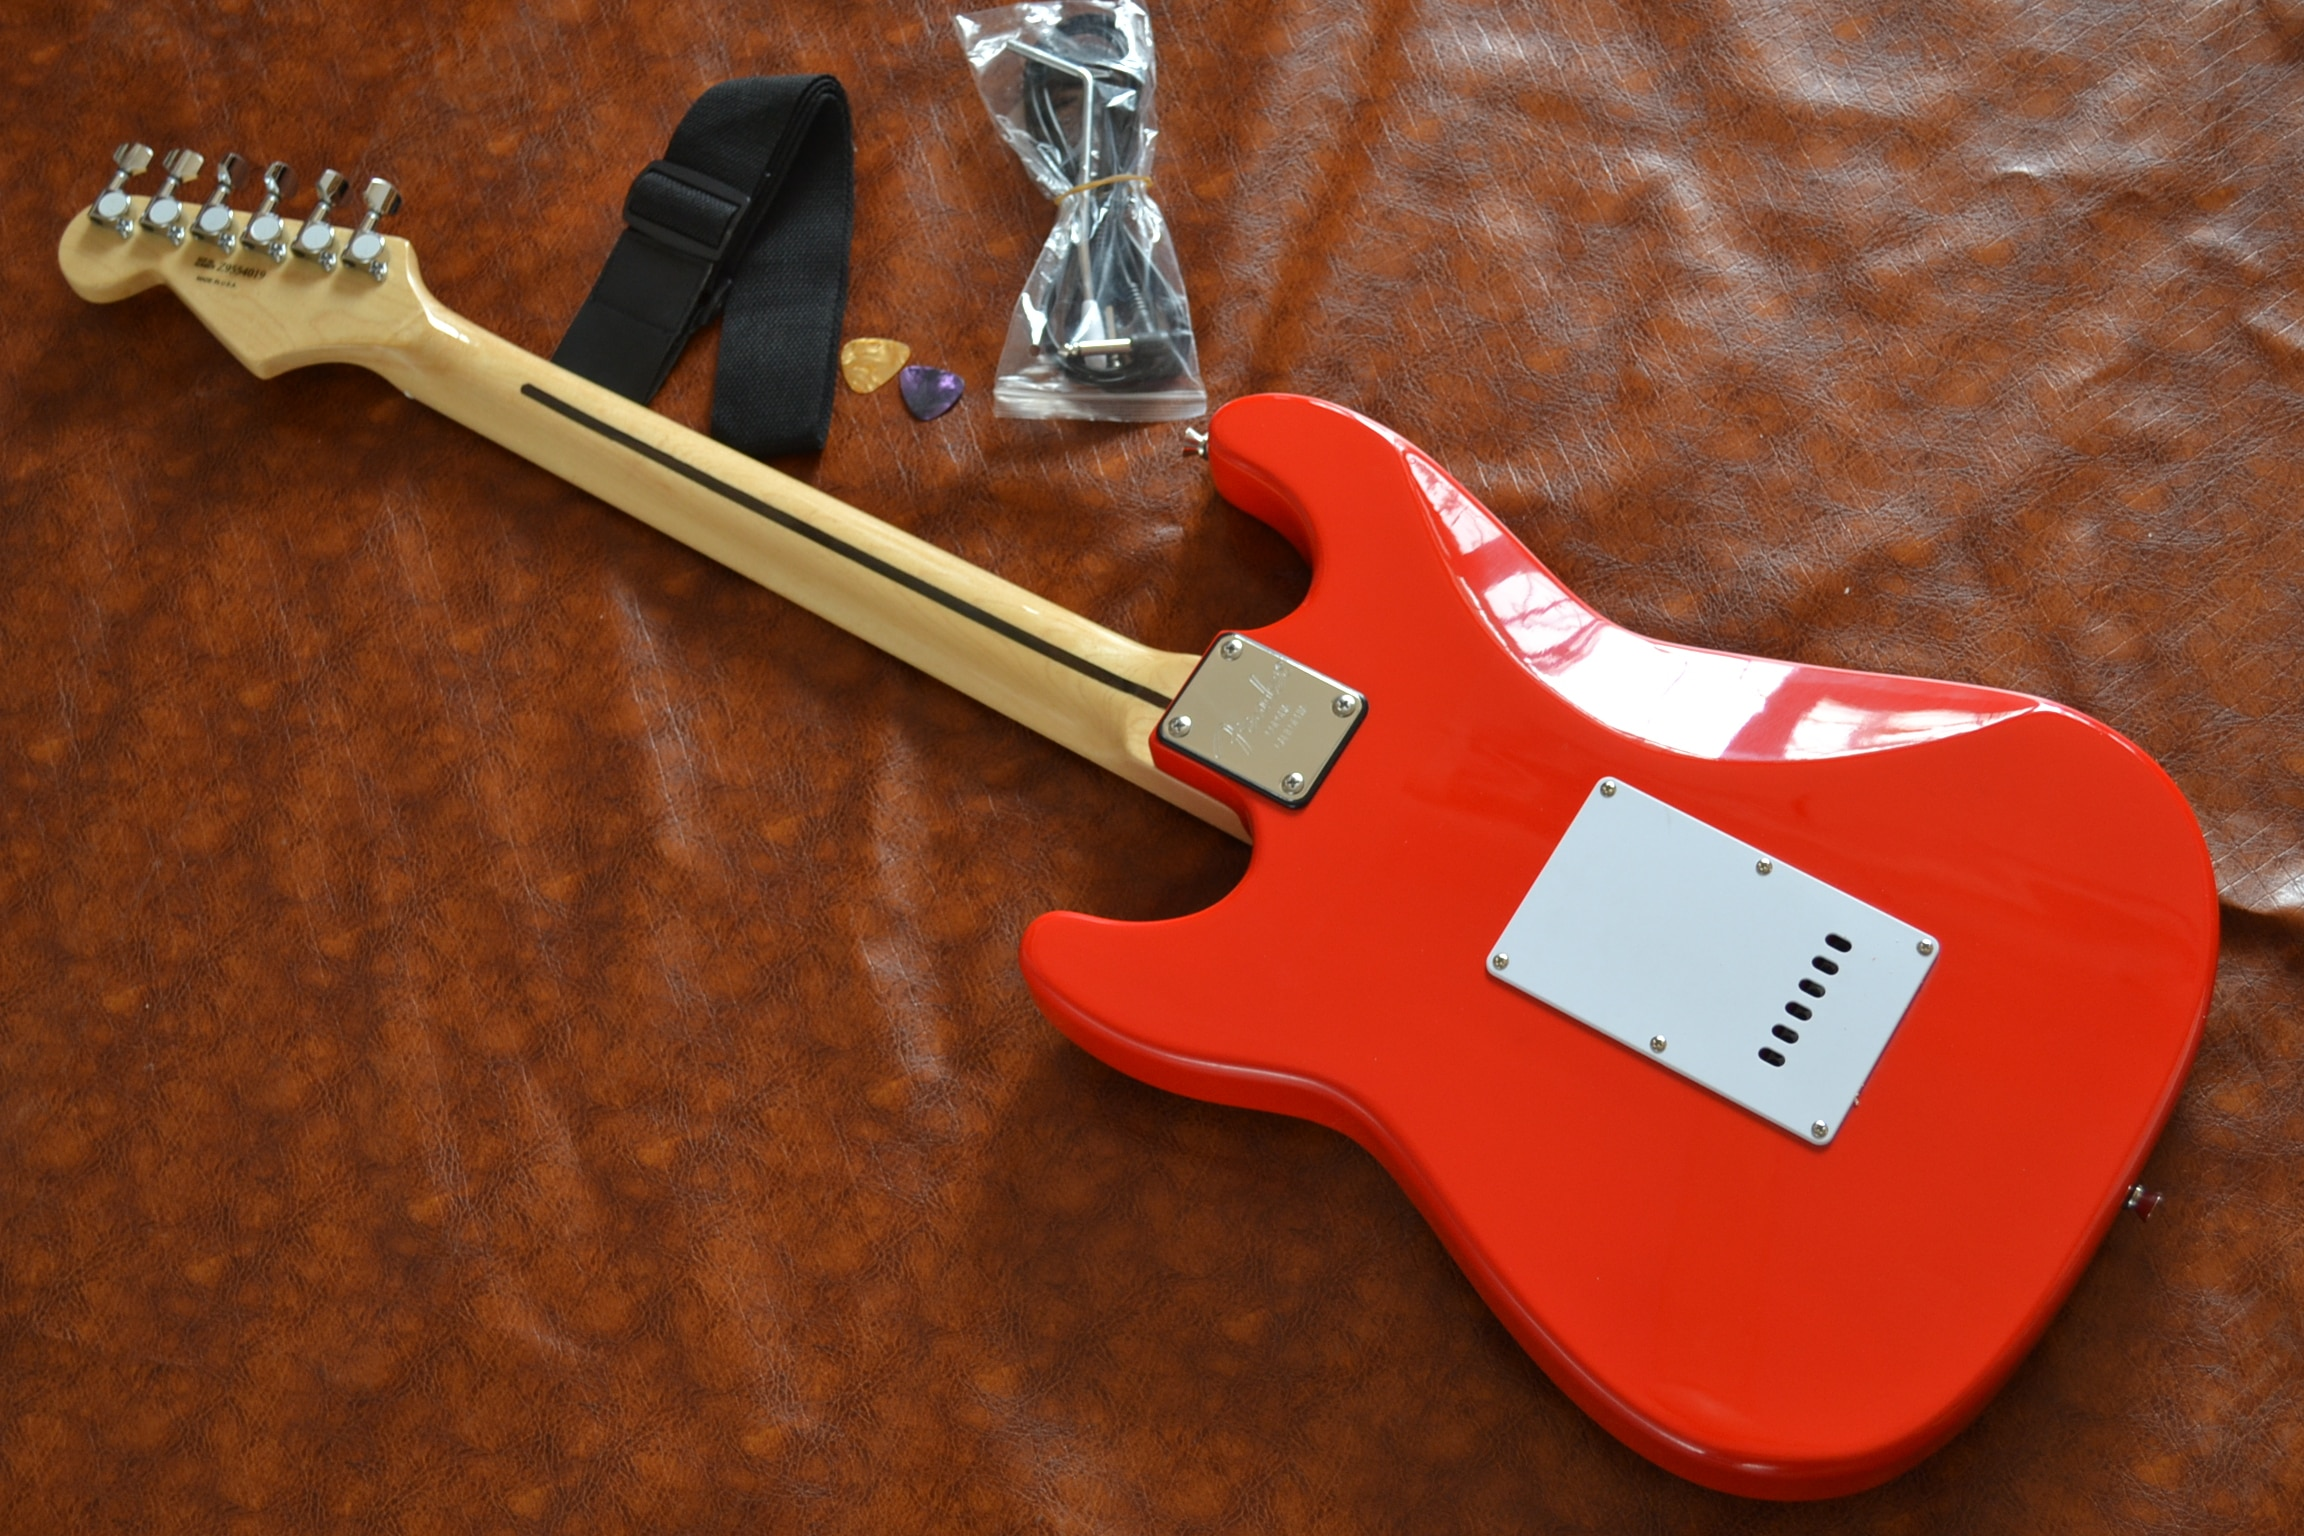 Factory direct supply, classic style, customized version of 6-string electric guitar, hot red, free delivery enlarge